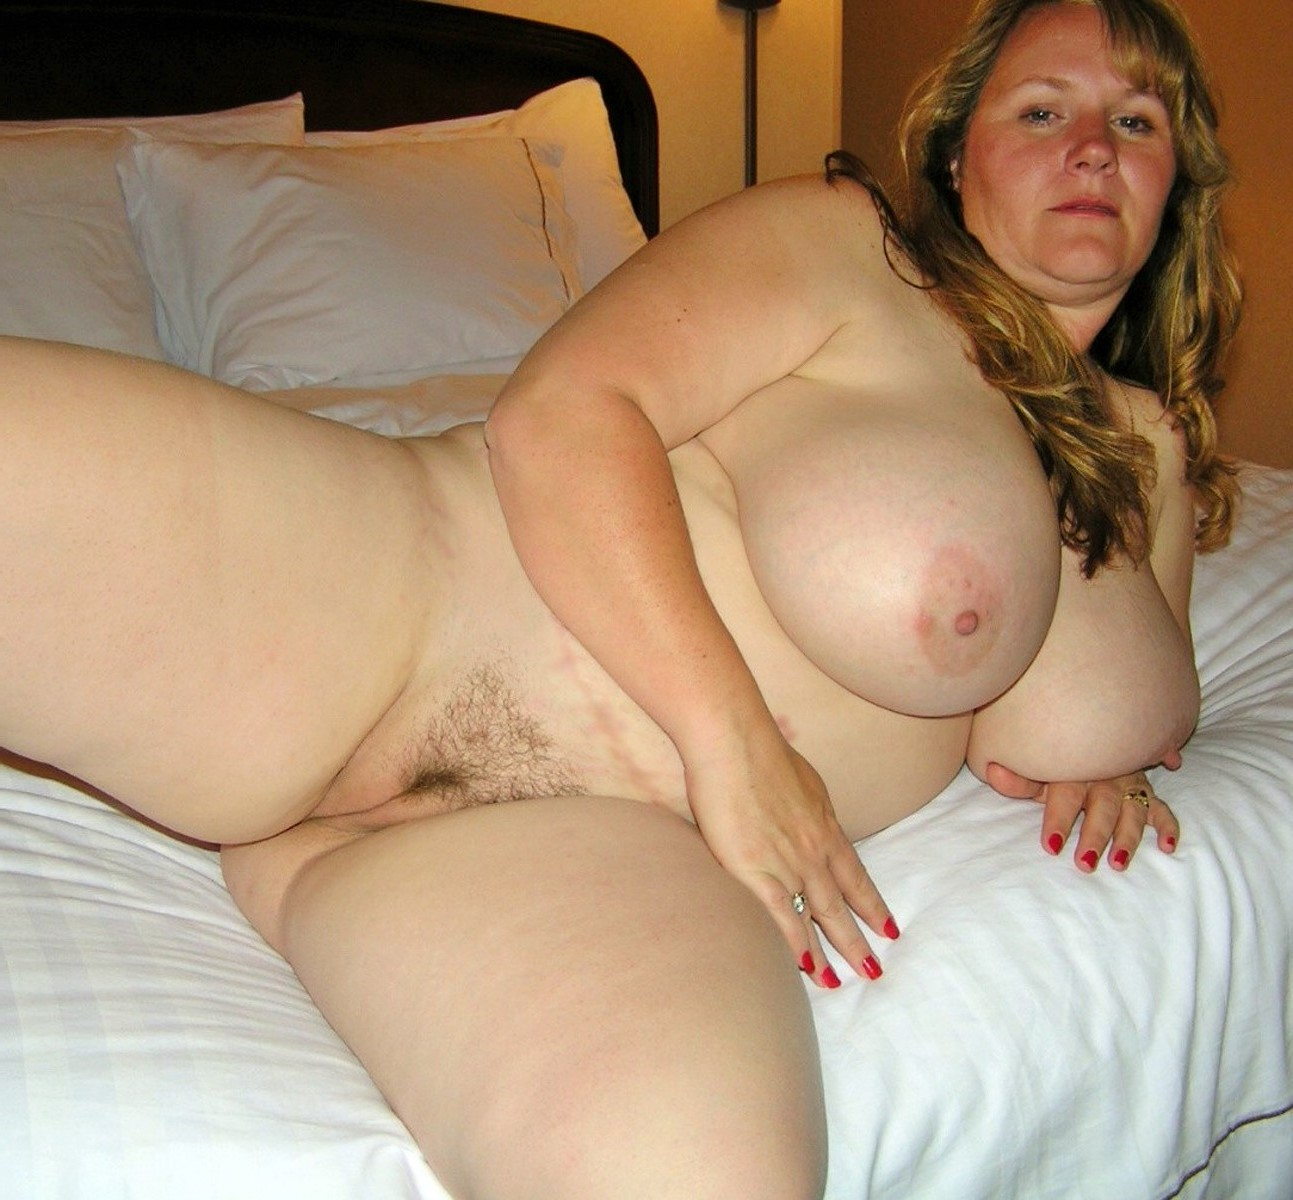 Bbw Housewife Porn Hd chubby housewife nude pic >> expiring desires, clockwork